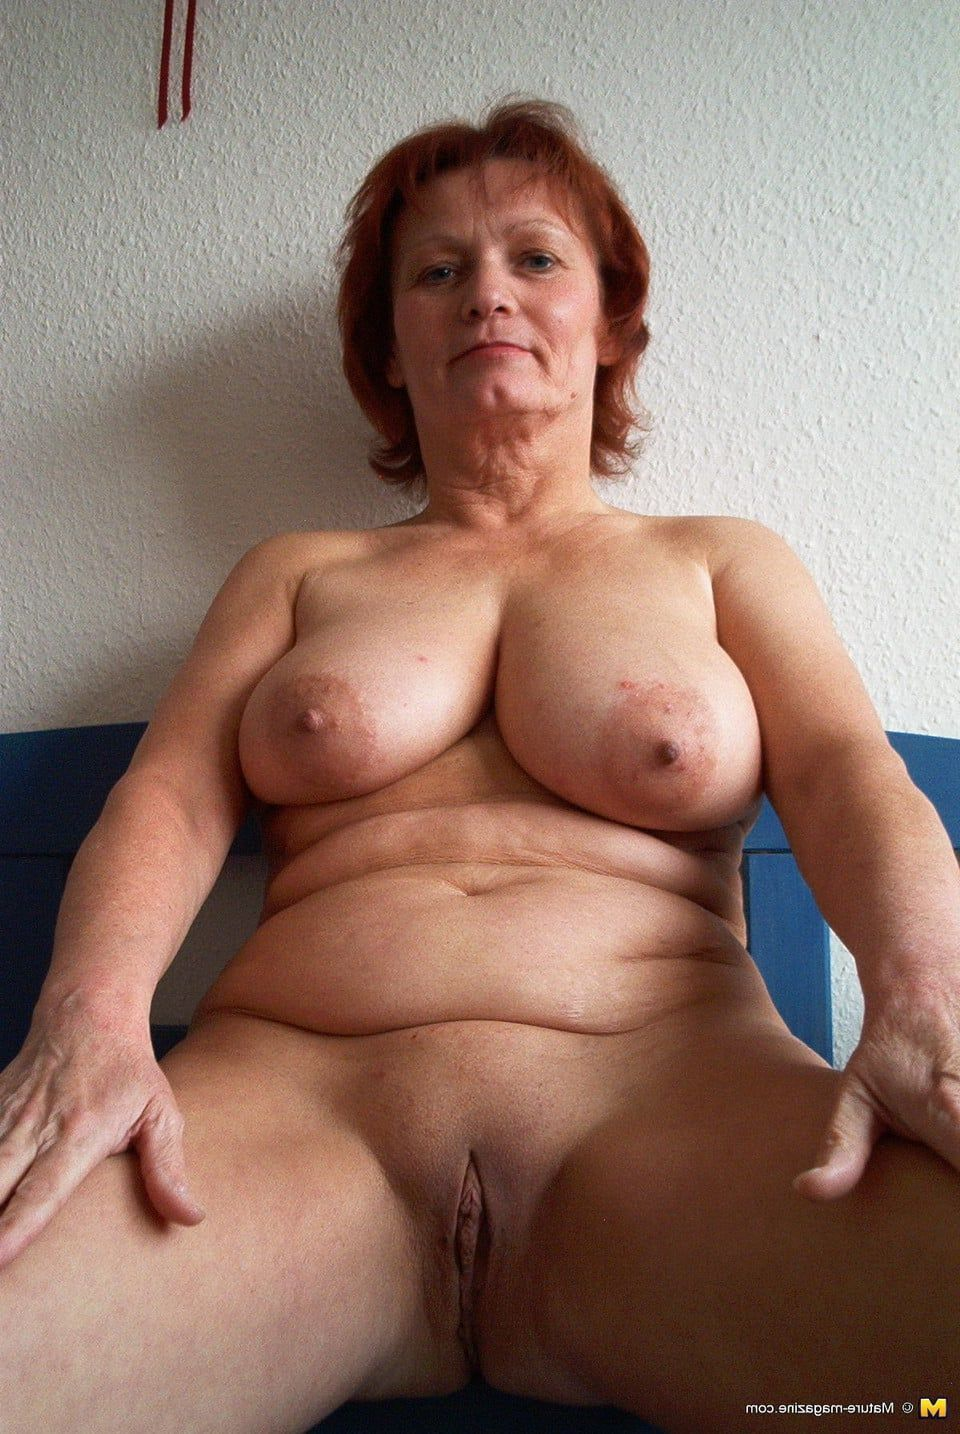 SWAT reccomend old nudes